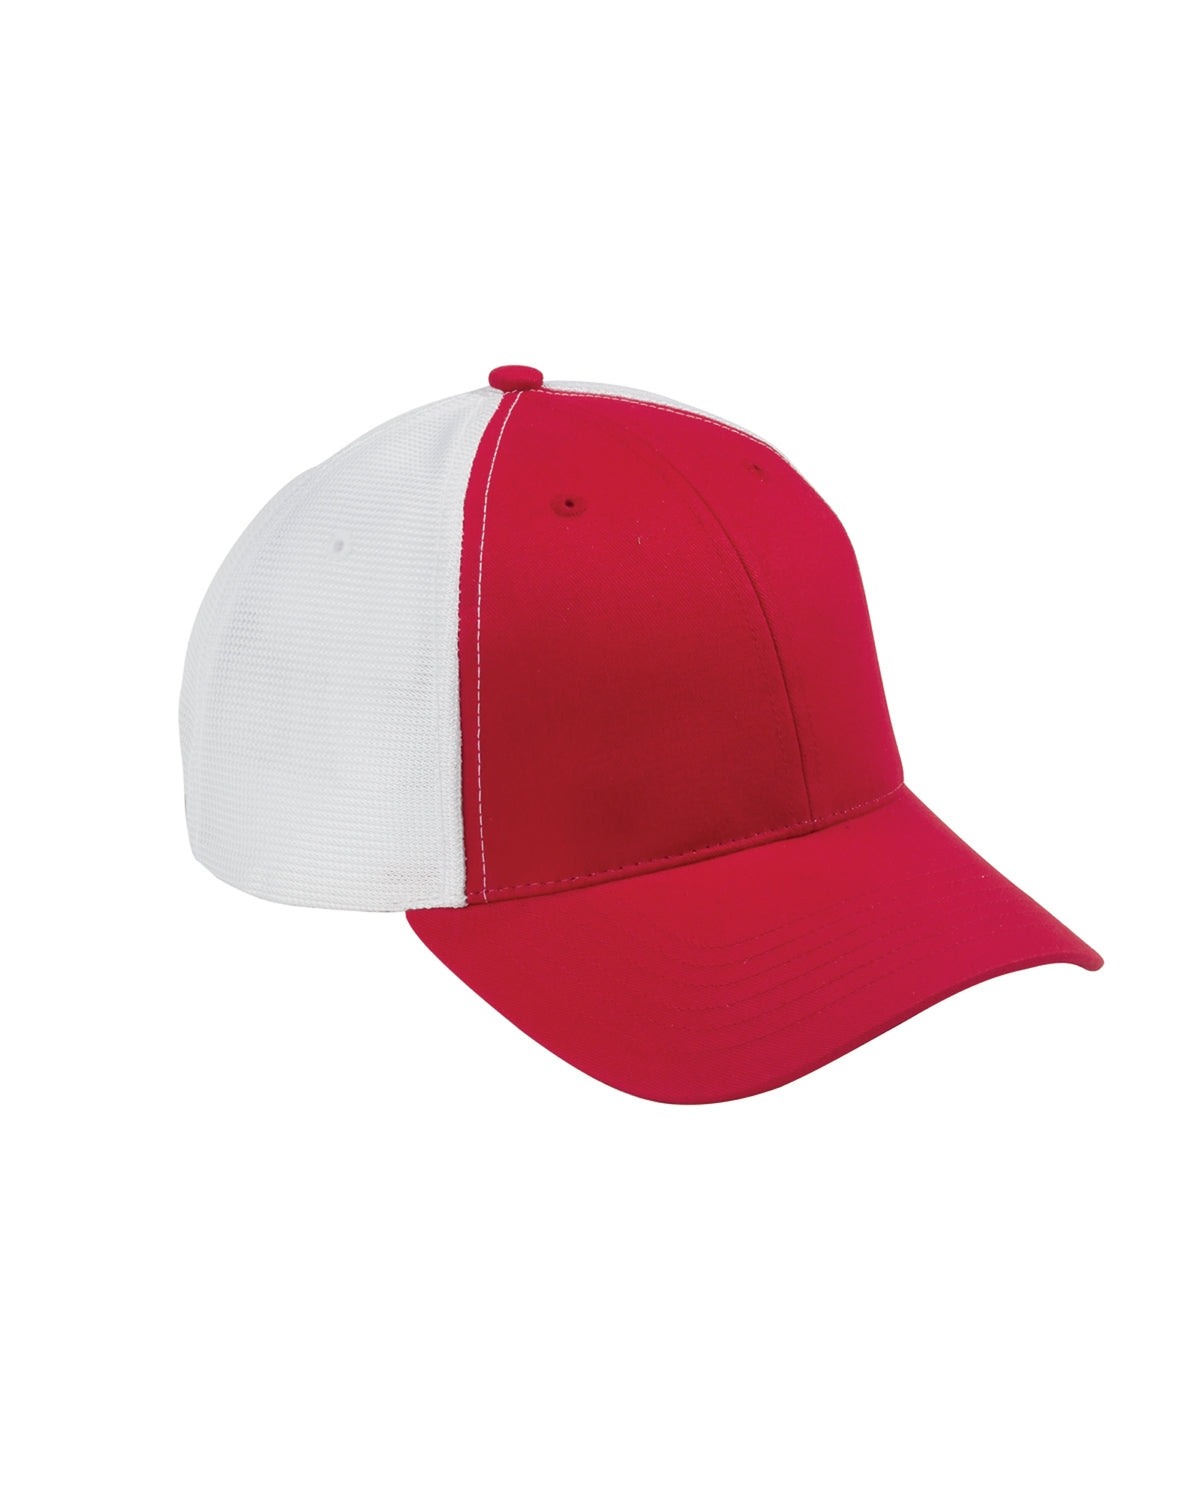 Old School Baseball Cap with Technical Mesh OSTM